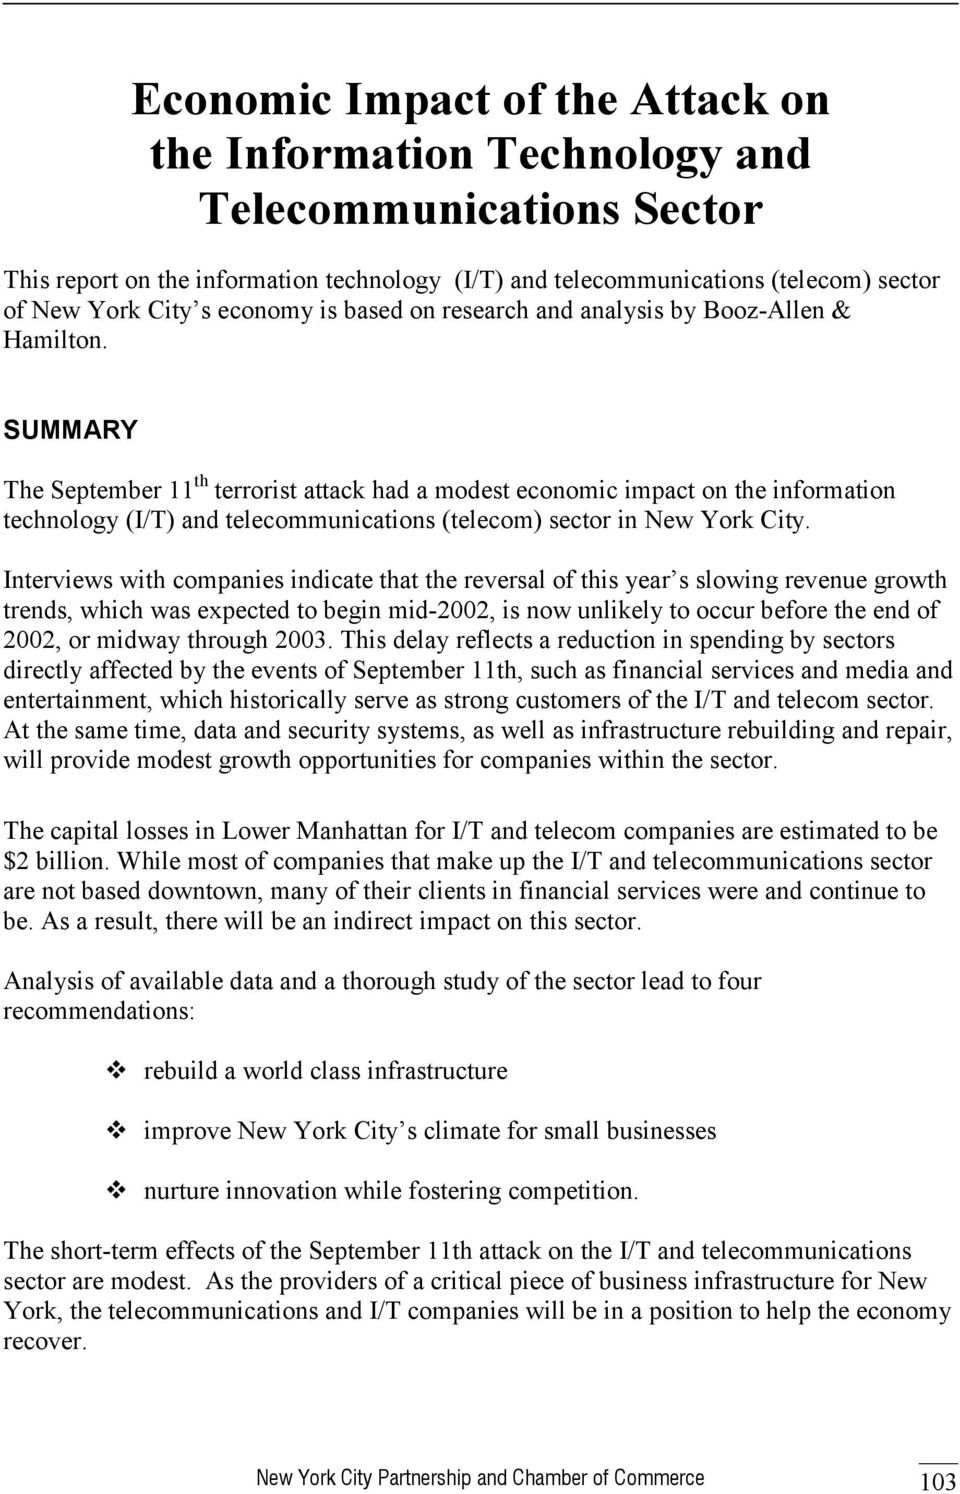 SUMMARY The September 11 th terrorist attack had a modest economic impact on the information technology (I/T) and telecommunications (telecom) sector in New York City.